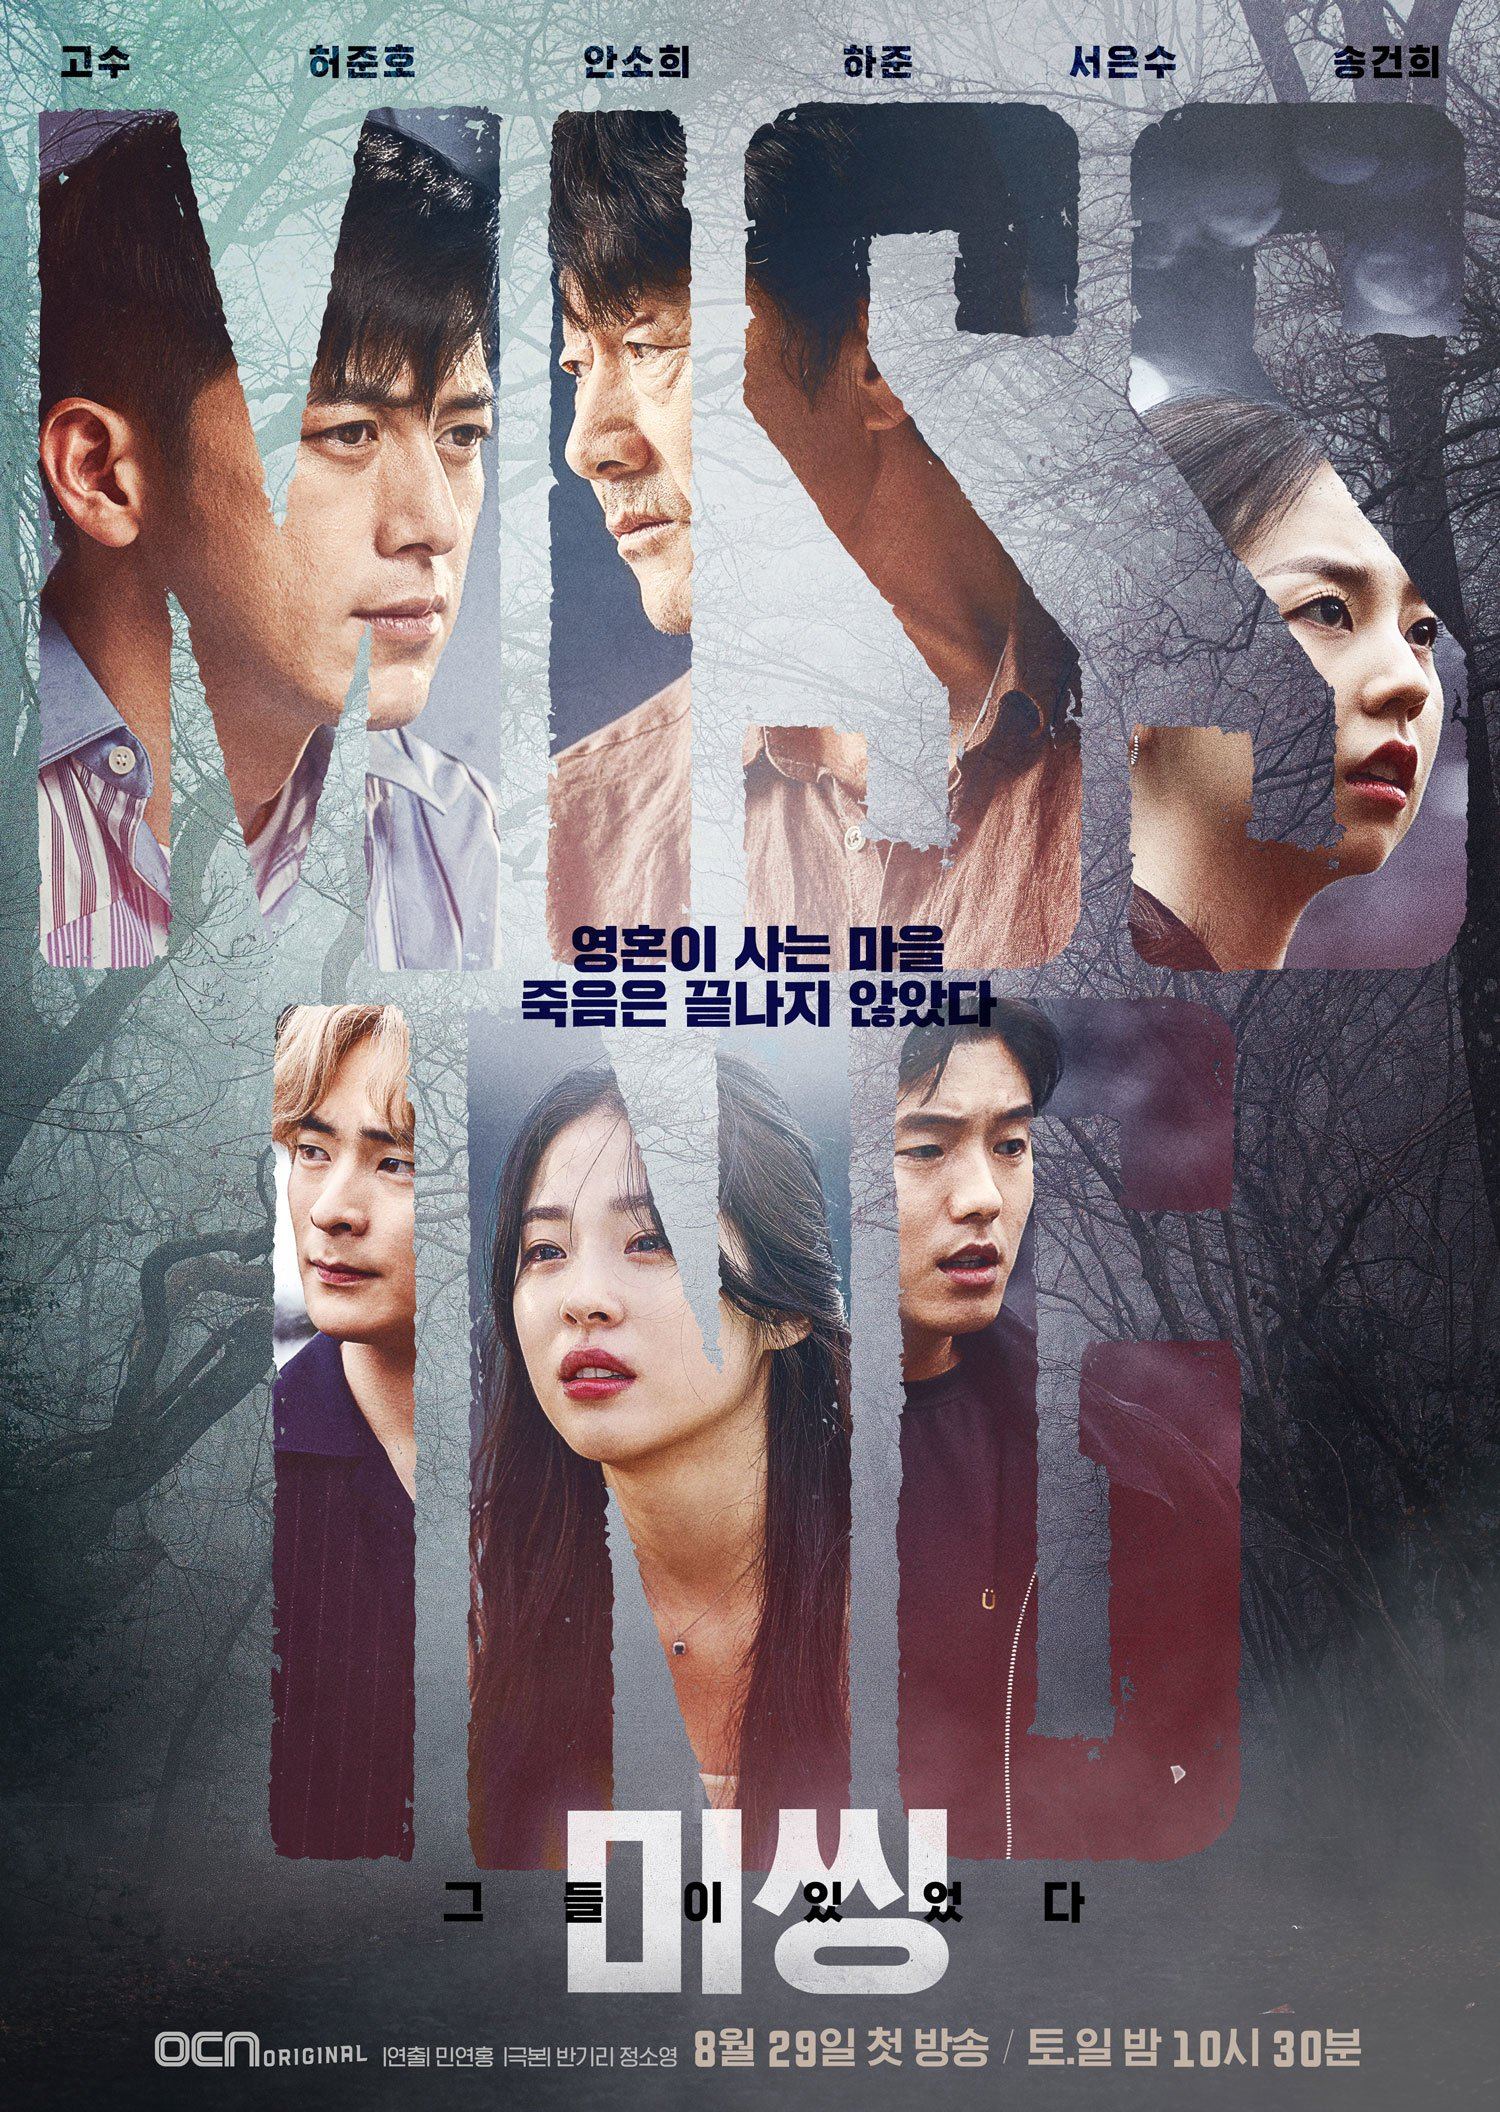 Missing: The Other Side | Kdrama | Completo